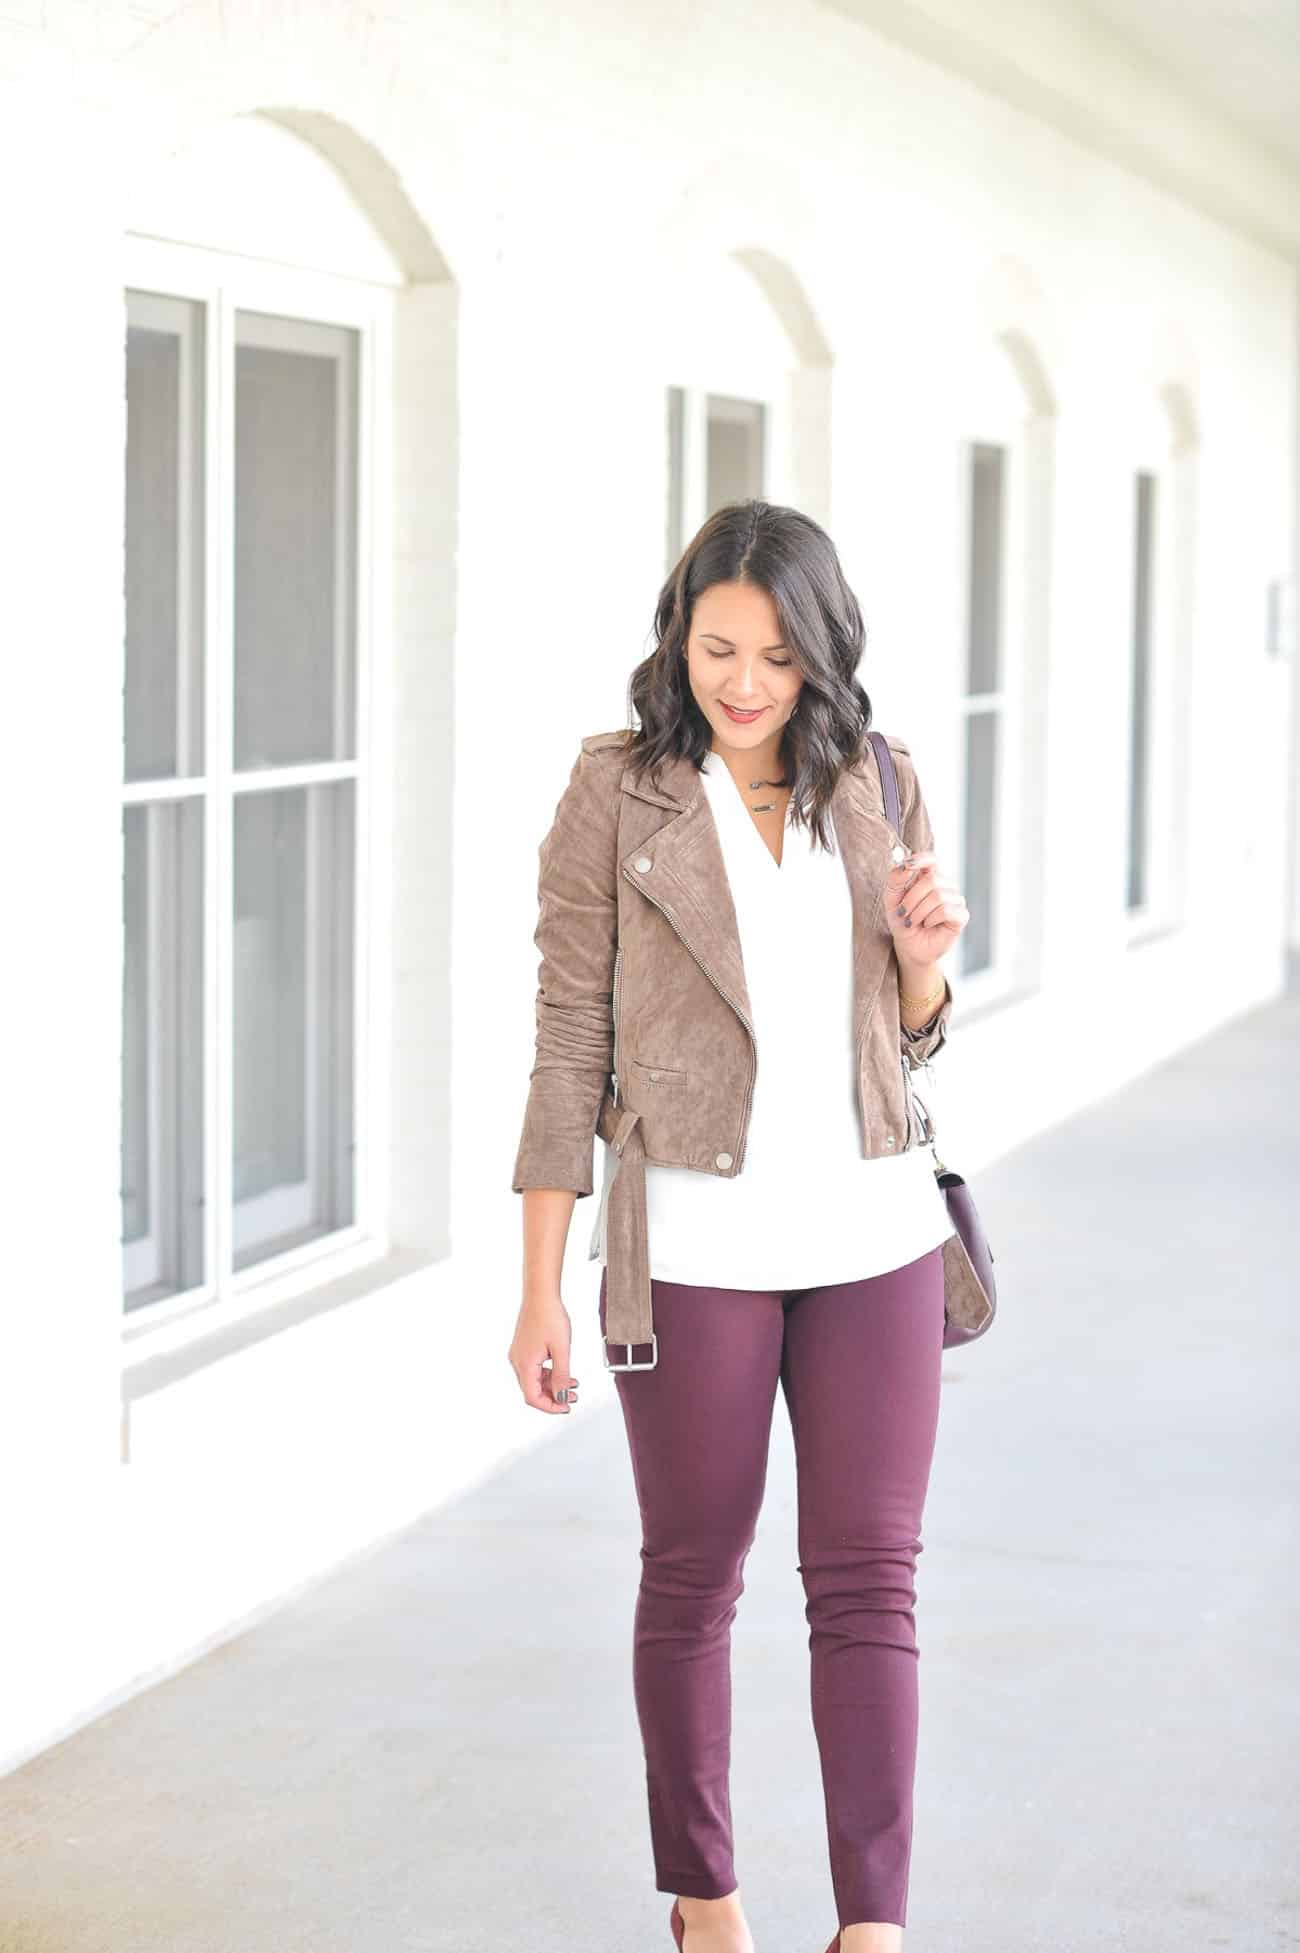 cooper-ella-lace-back-top-fall-outfit-ideas-how-to-style-burgundy-jeans-my-style-vita-mystylevita-8-of-26